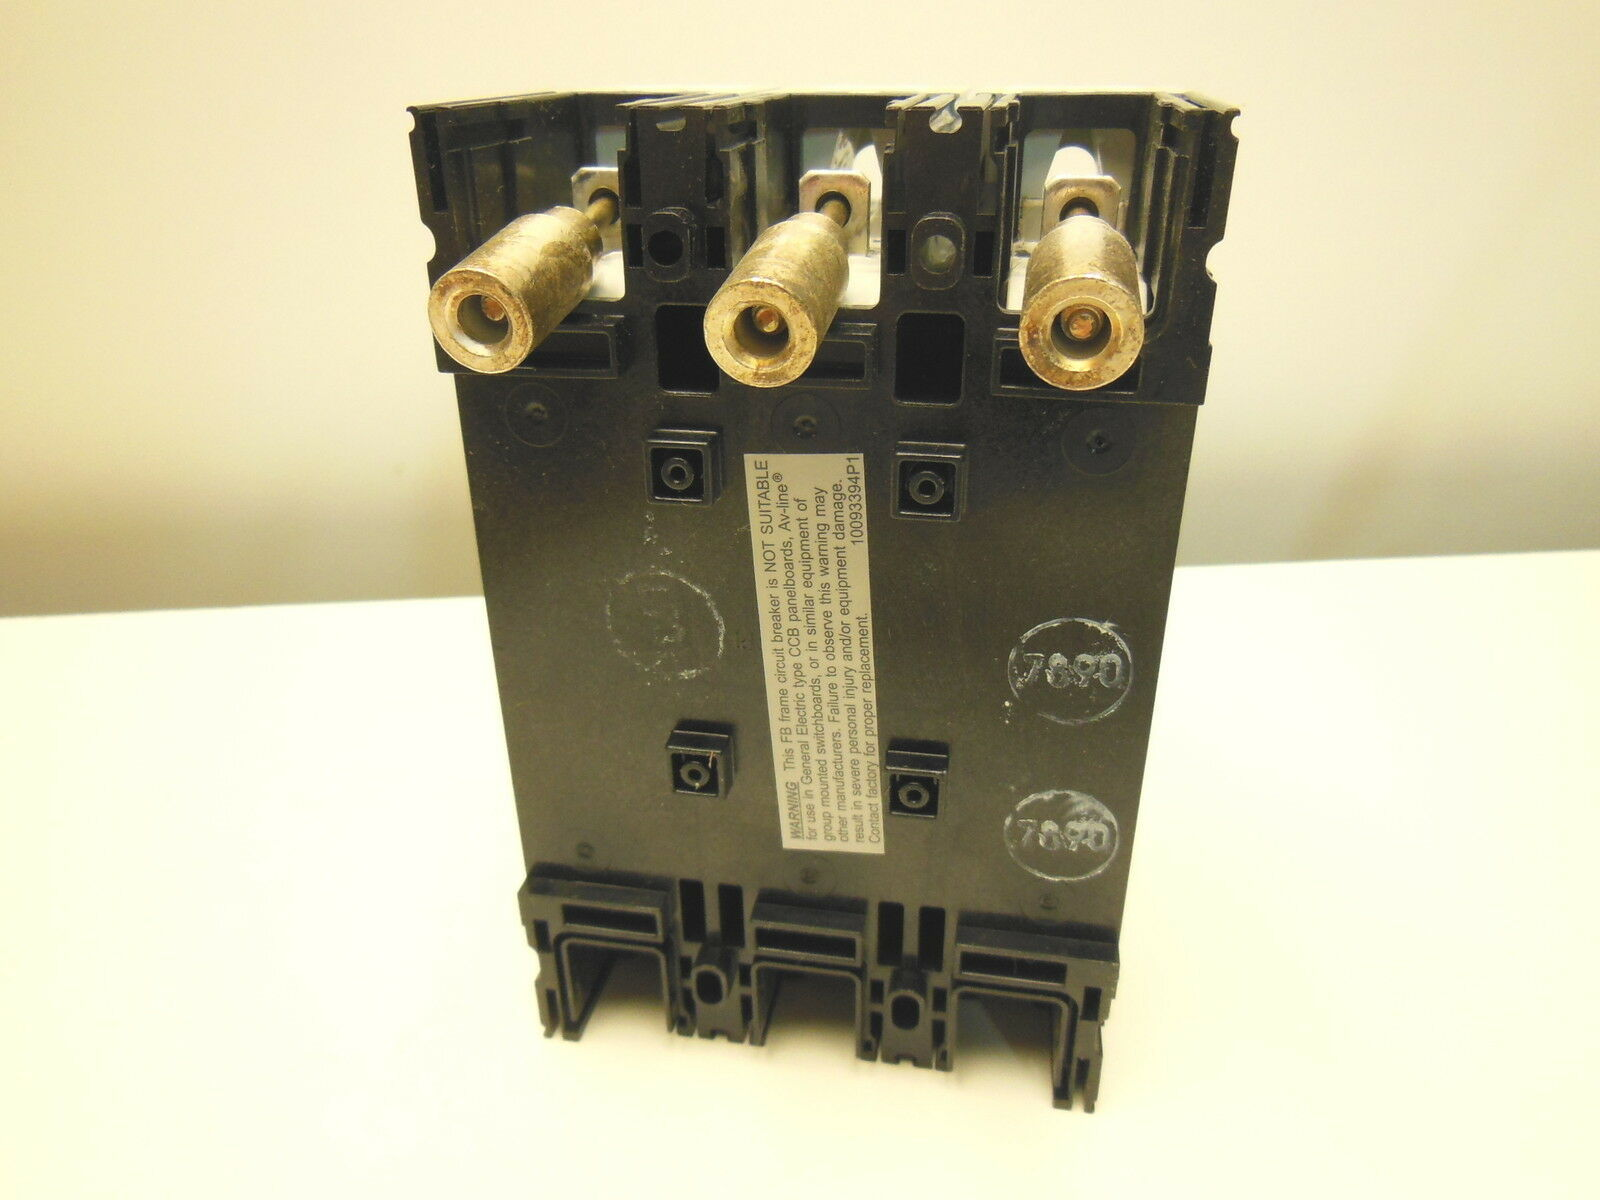 General Electric Circuit Breaker Replacement Zinsco Breakers New Used And Obsolete Breakerconnection Ge Te Amp Pole Volt Record Plus Ebay 1600x1200